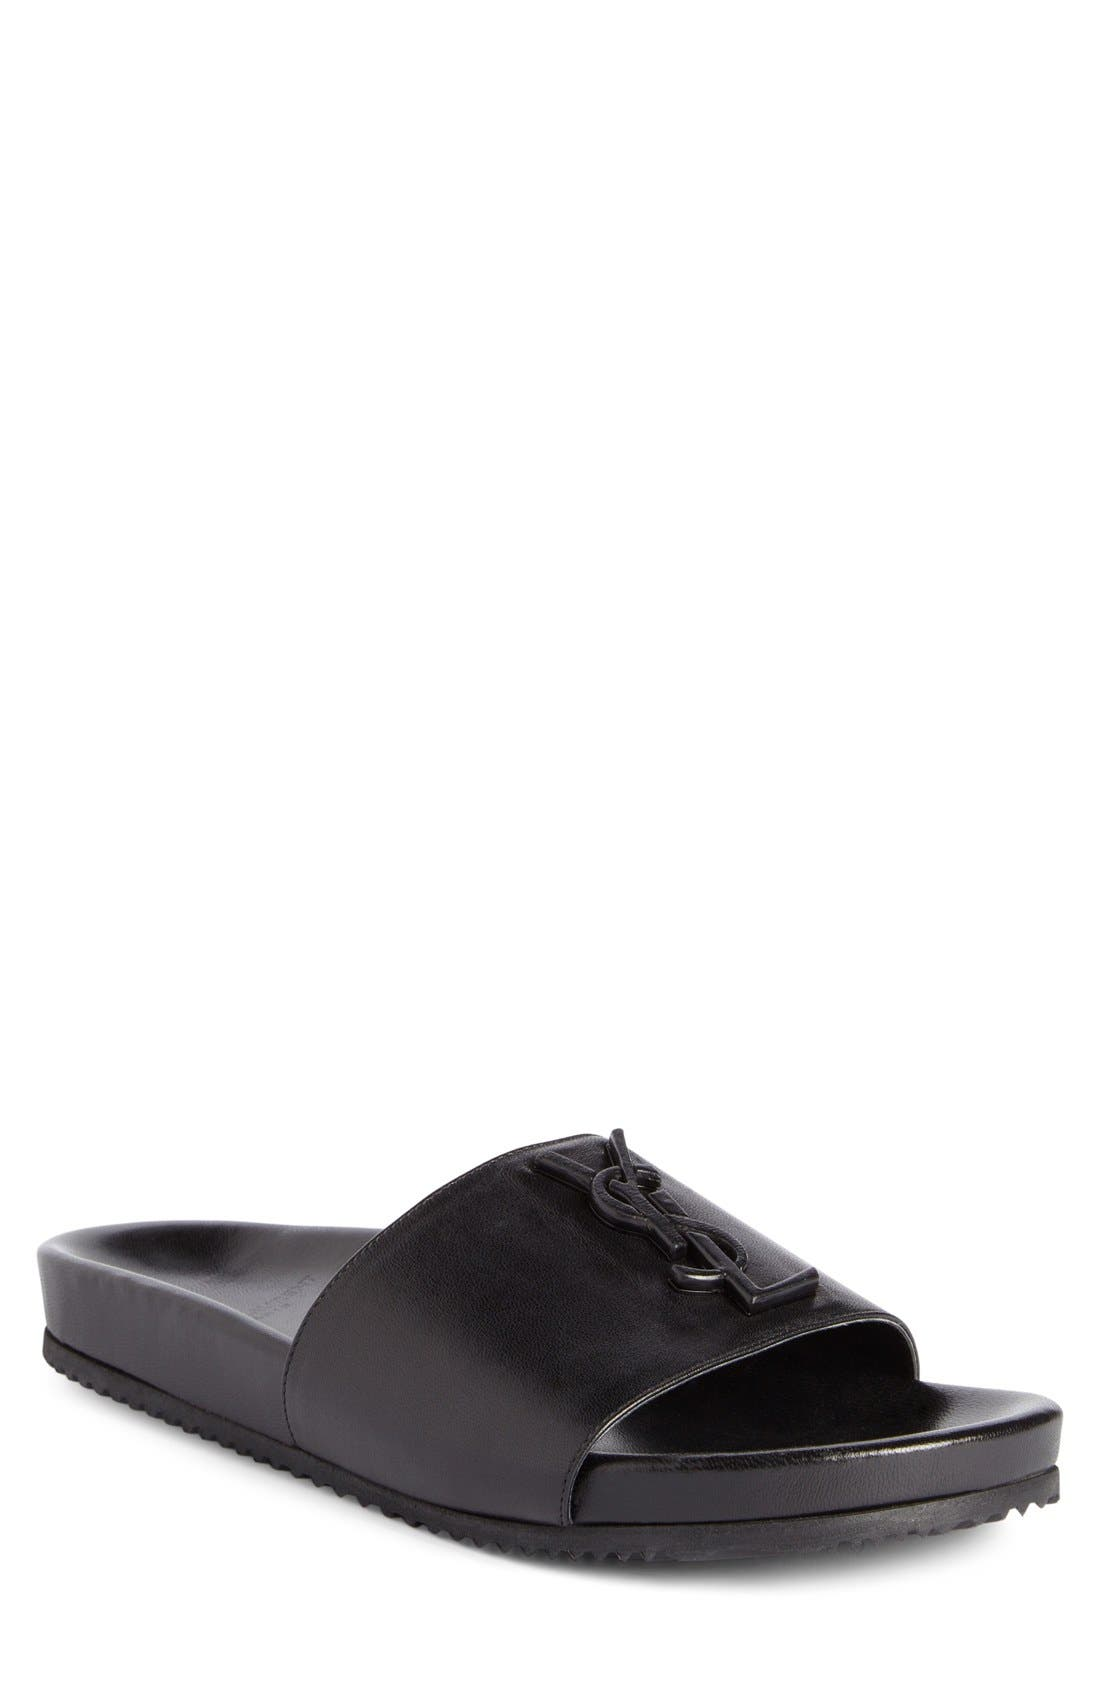 Saint Laurent Joan Slide Sandal (Women)